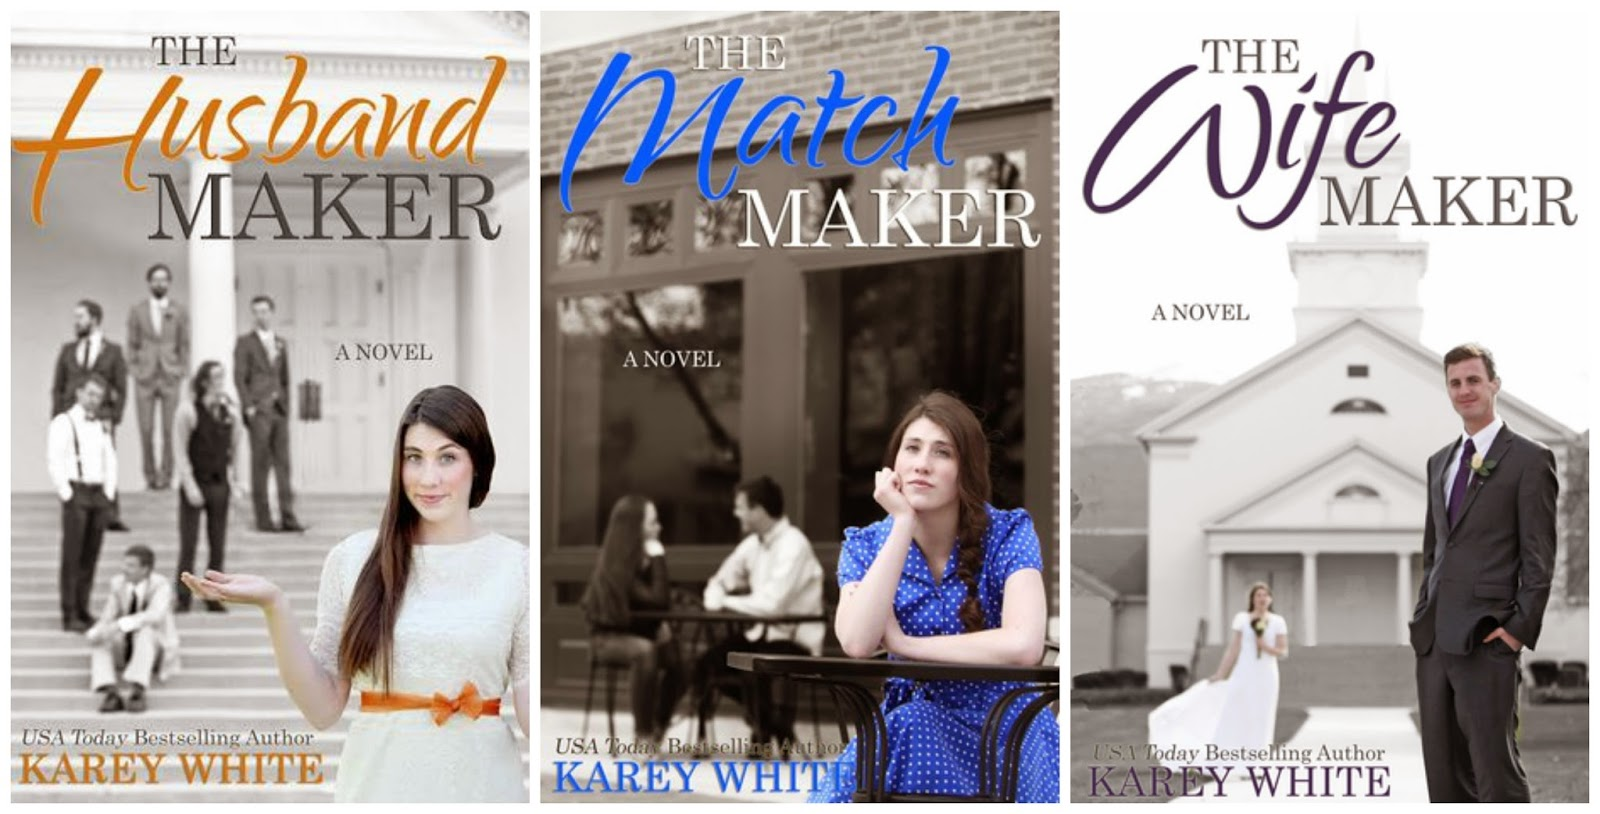 Book covers: The Husband Maker series by Karey White